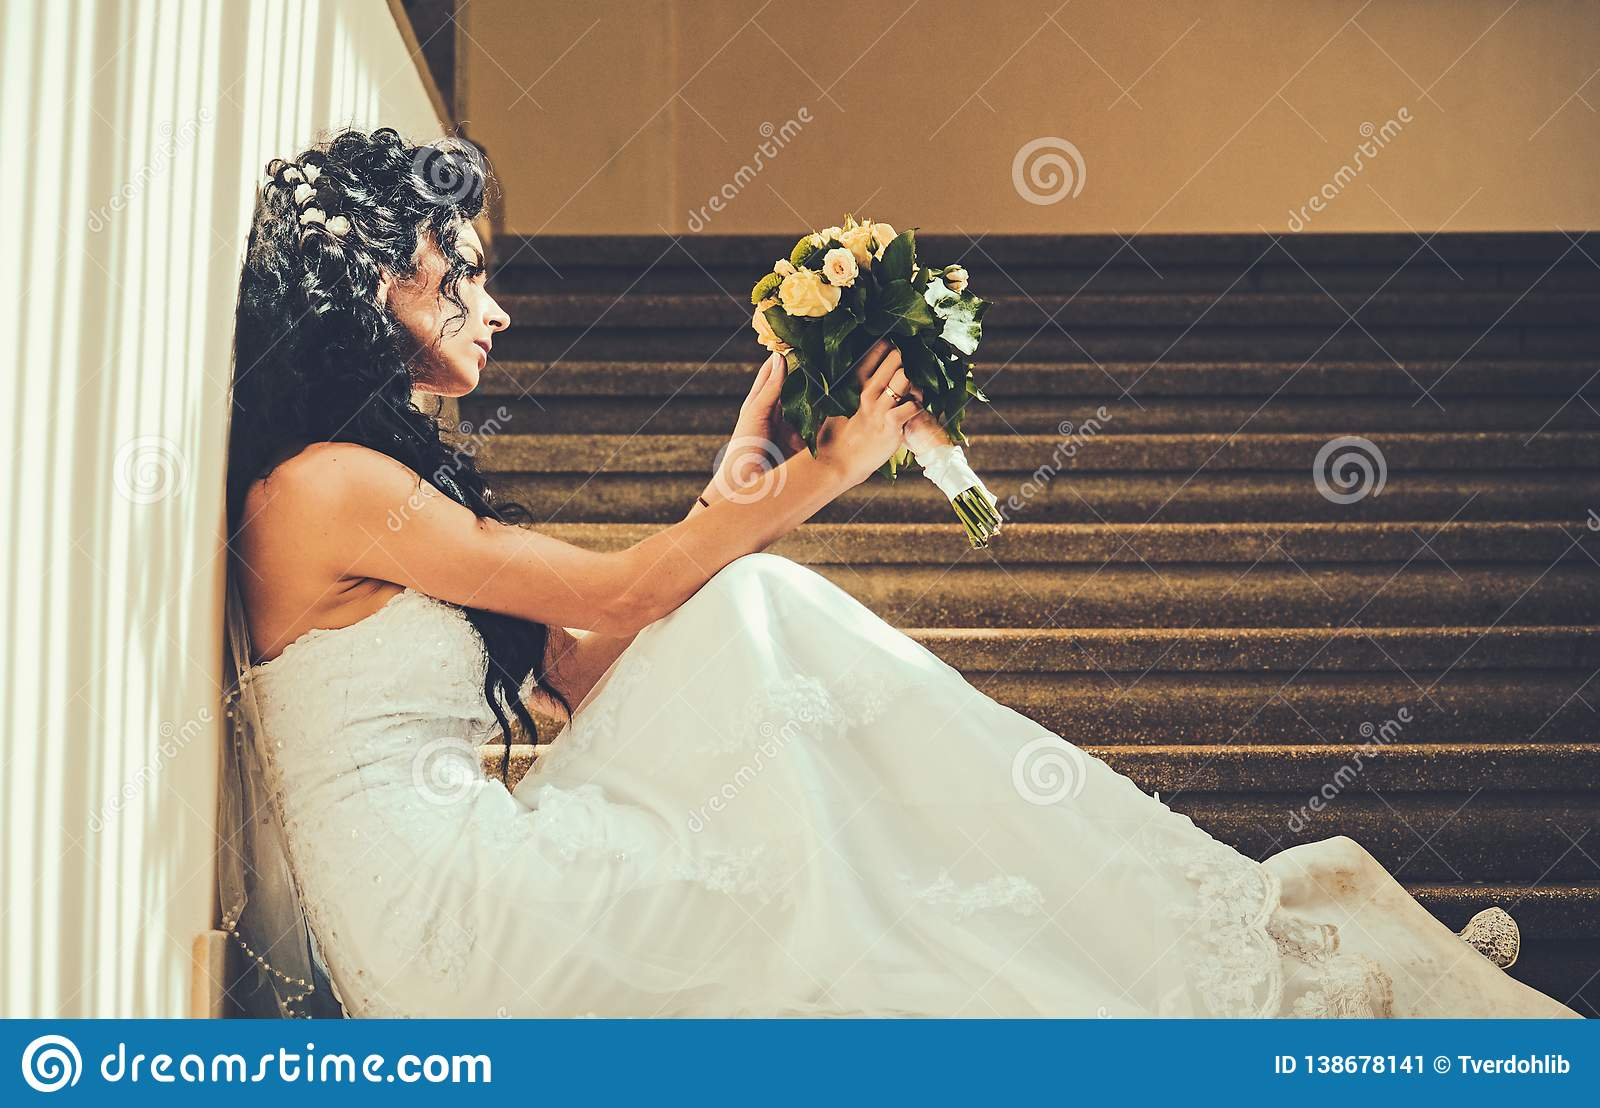 Bride In Fashion White Dress Sensual Woman With Wedding Bouquet